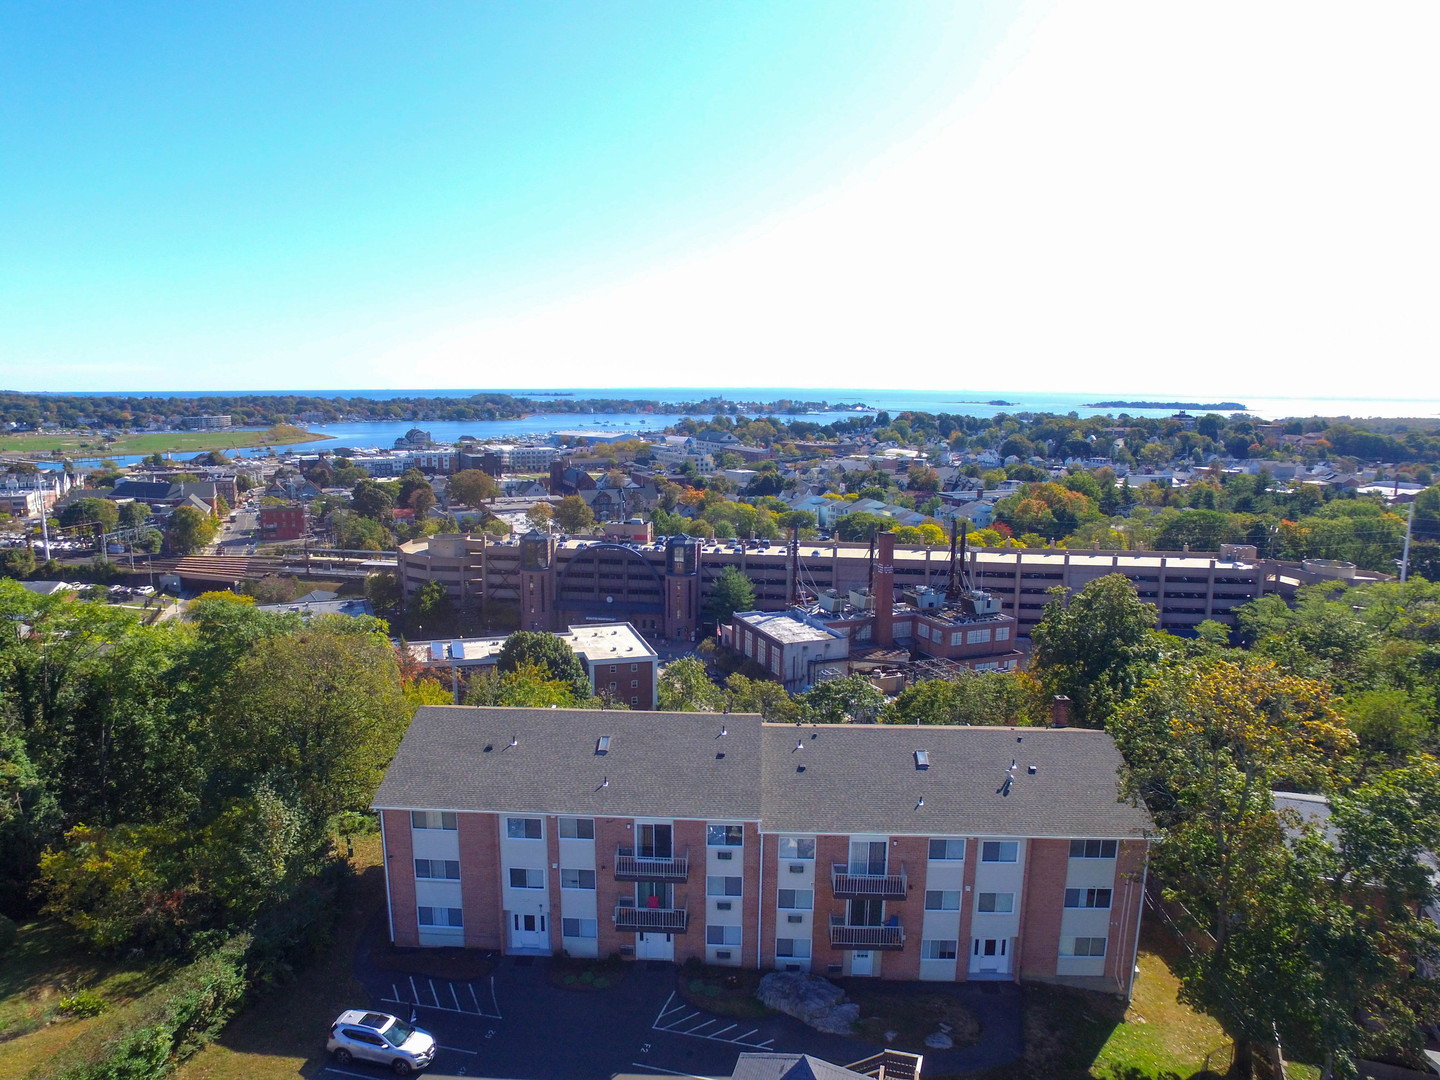 Norwalk Drone Photos Edited-4.jpg